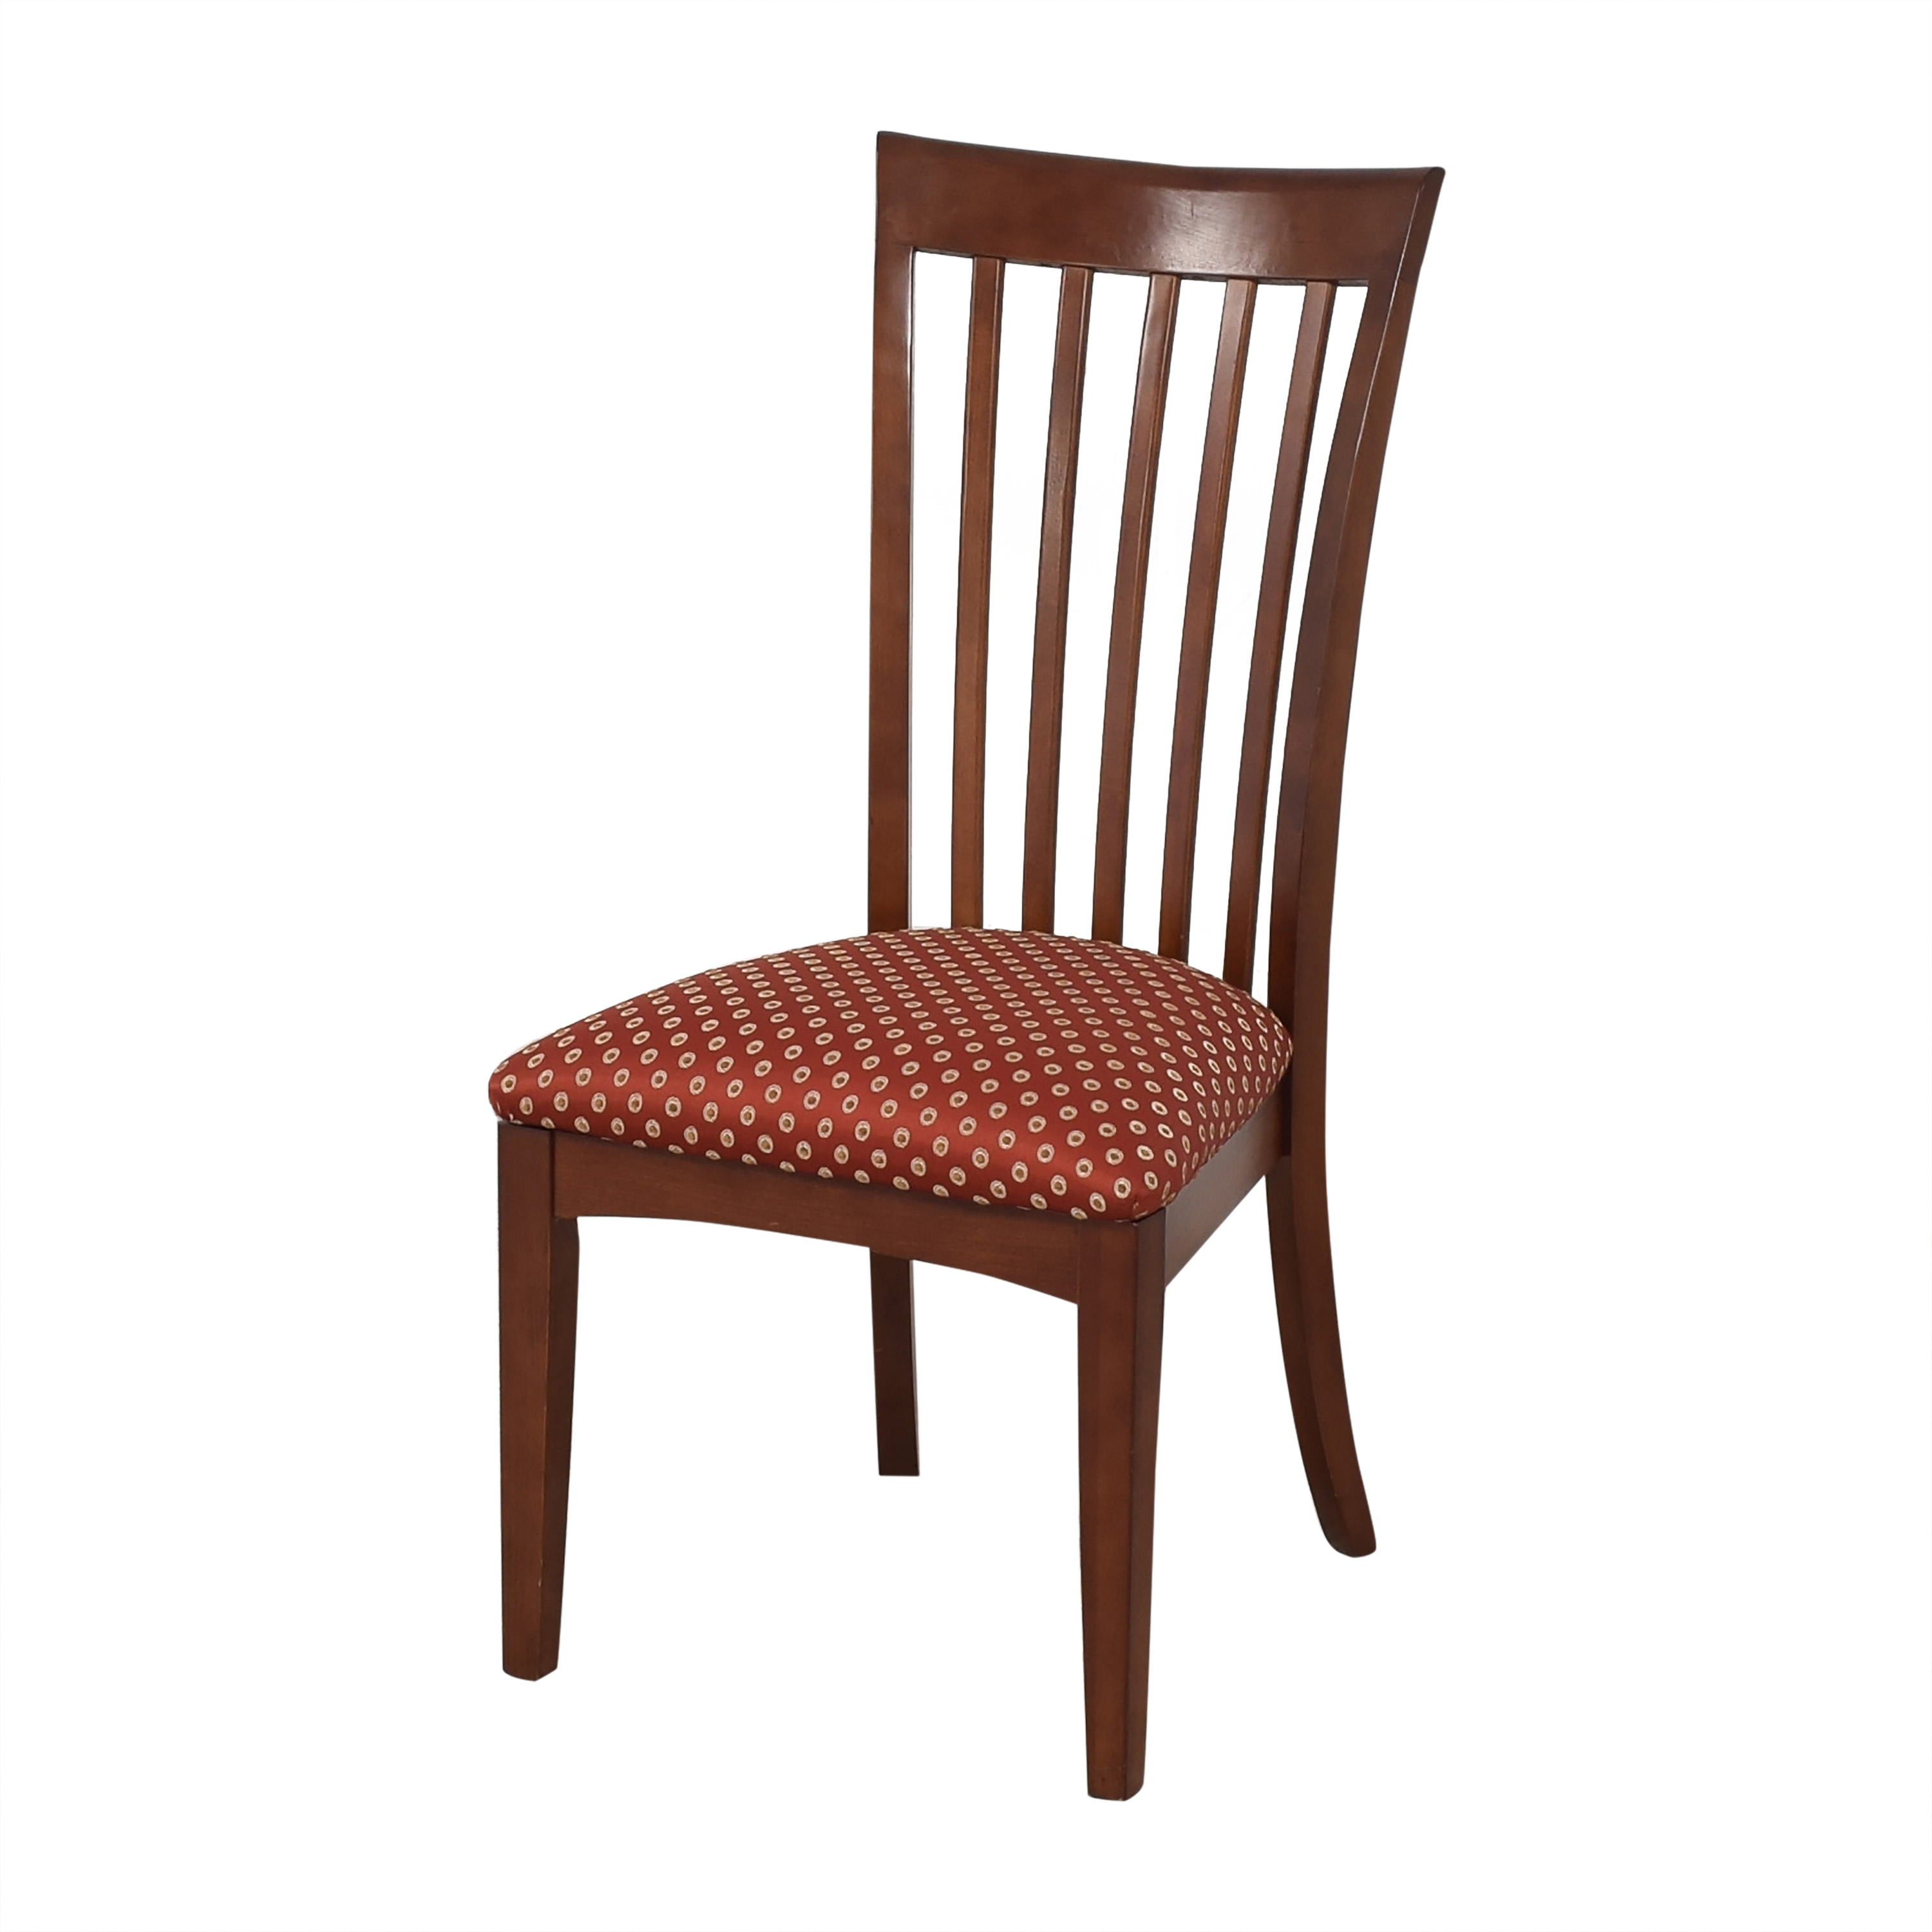 Upholstered Dining Chairs second hand